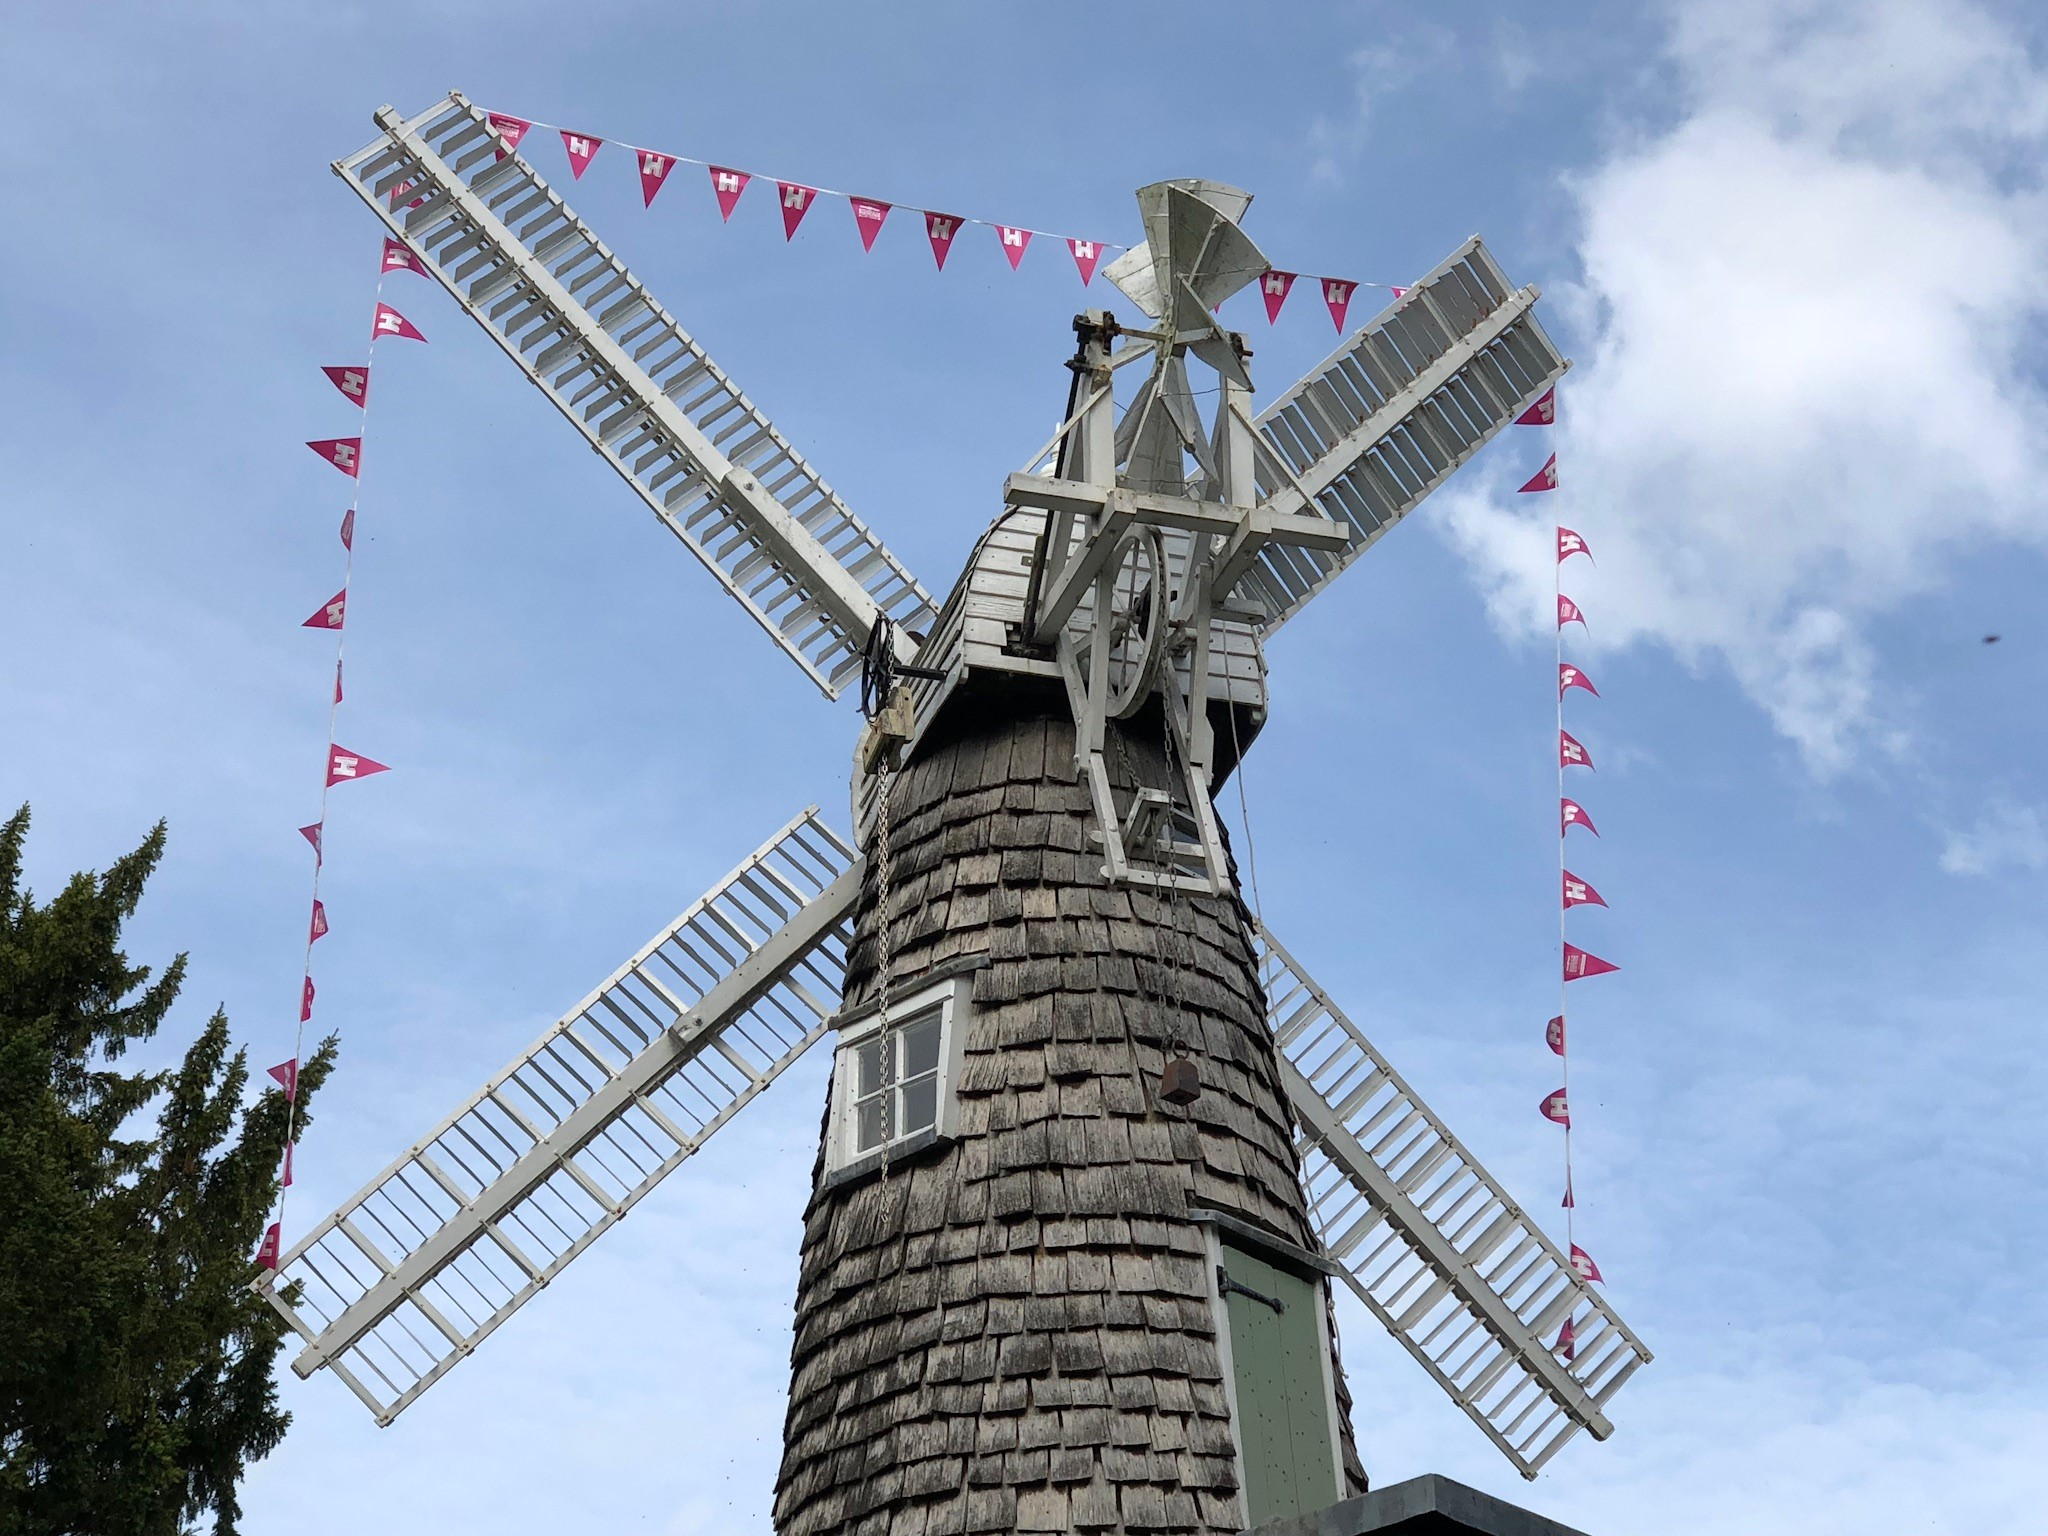 Heritage Open Days bunting around a windmill